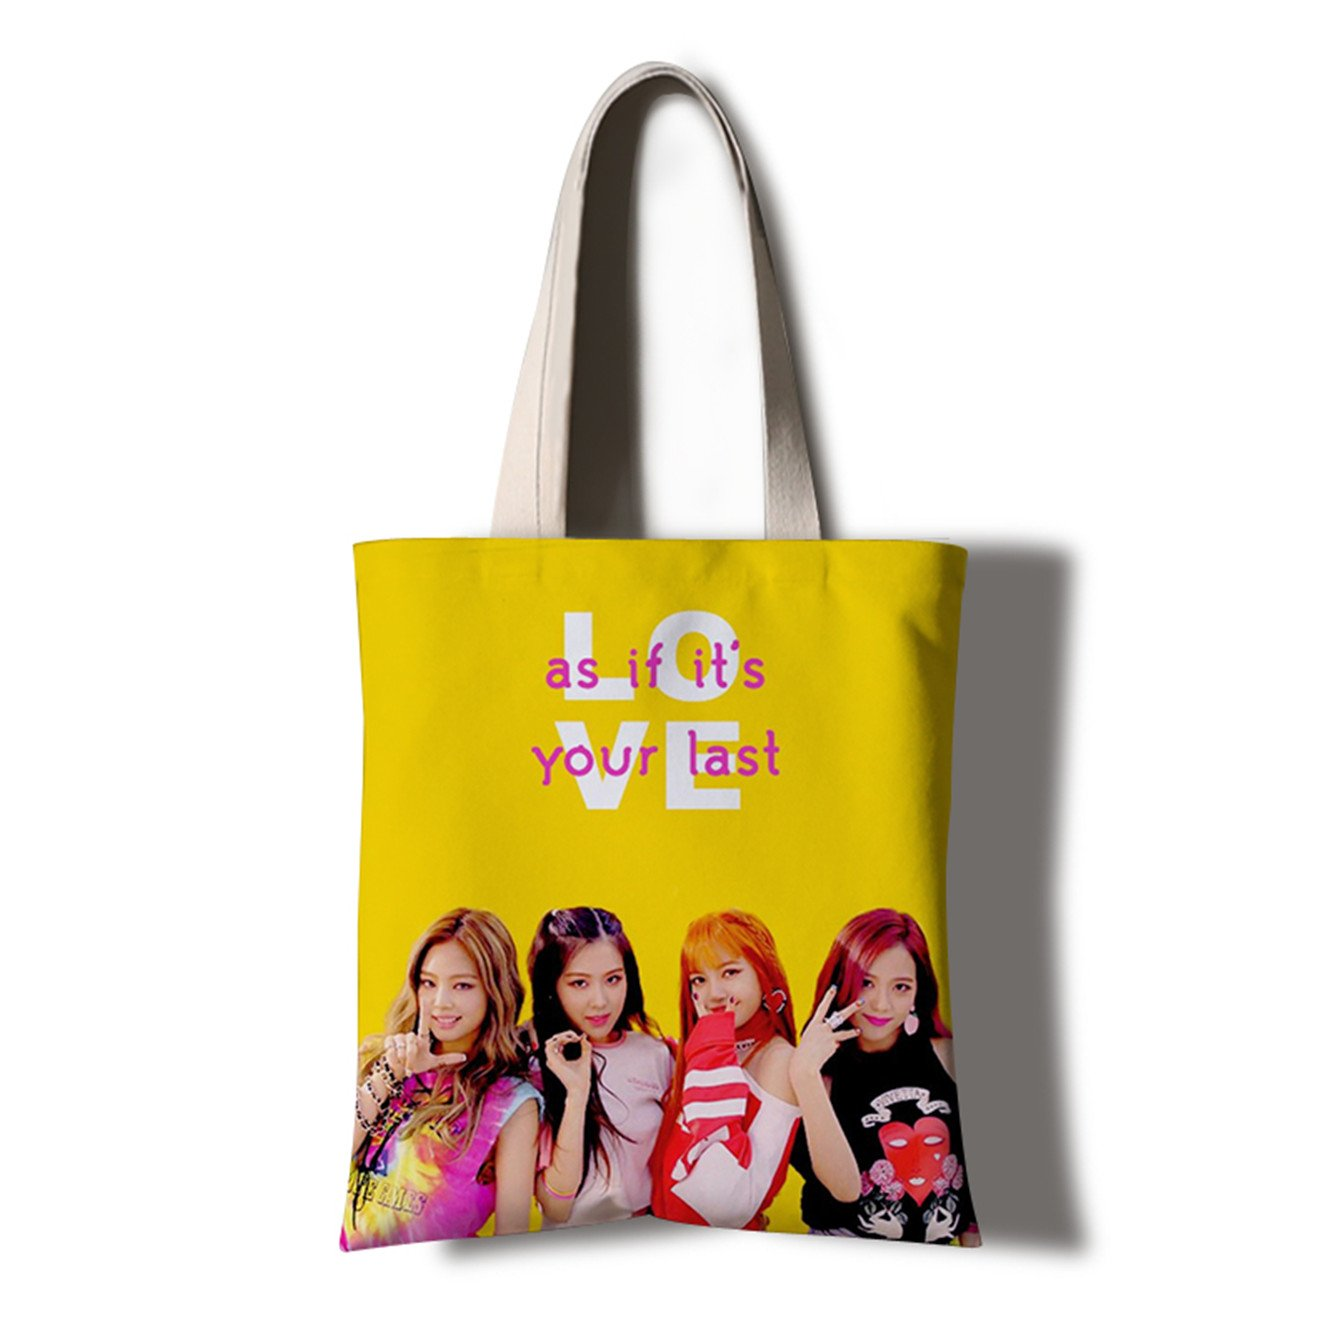 JUSTGOGO KPOP BLACKPINK Casual Messenger Bag Cross-body Bag Shoulder Bag Travel Bag Handbag Tote Bag